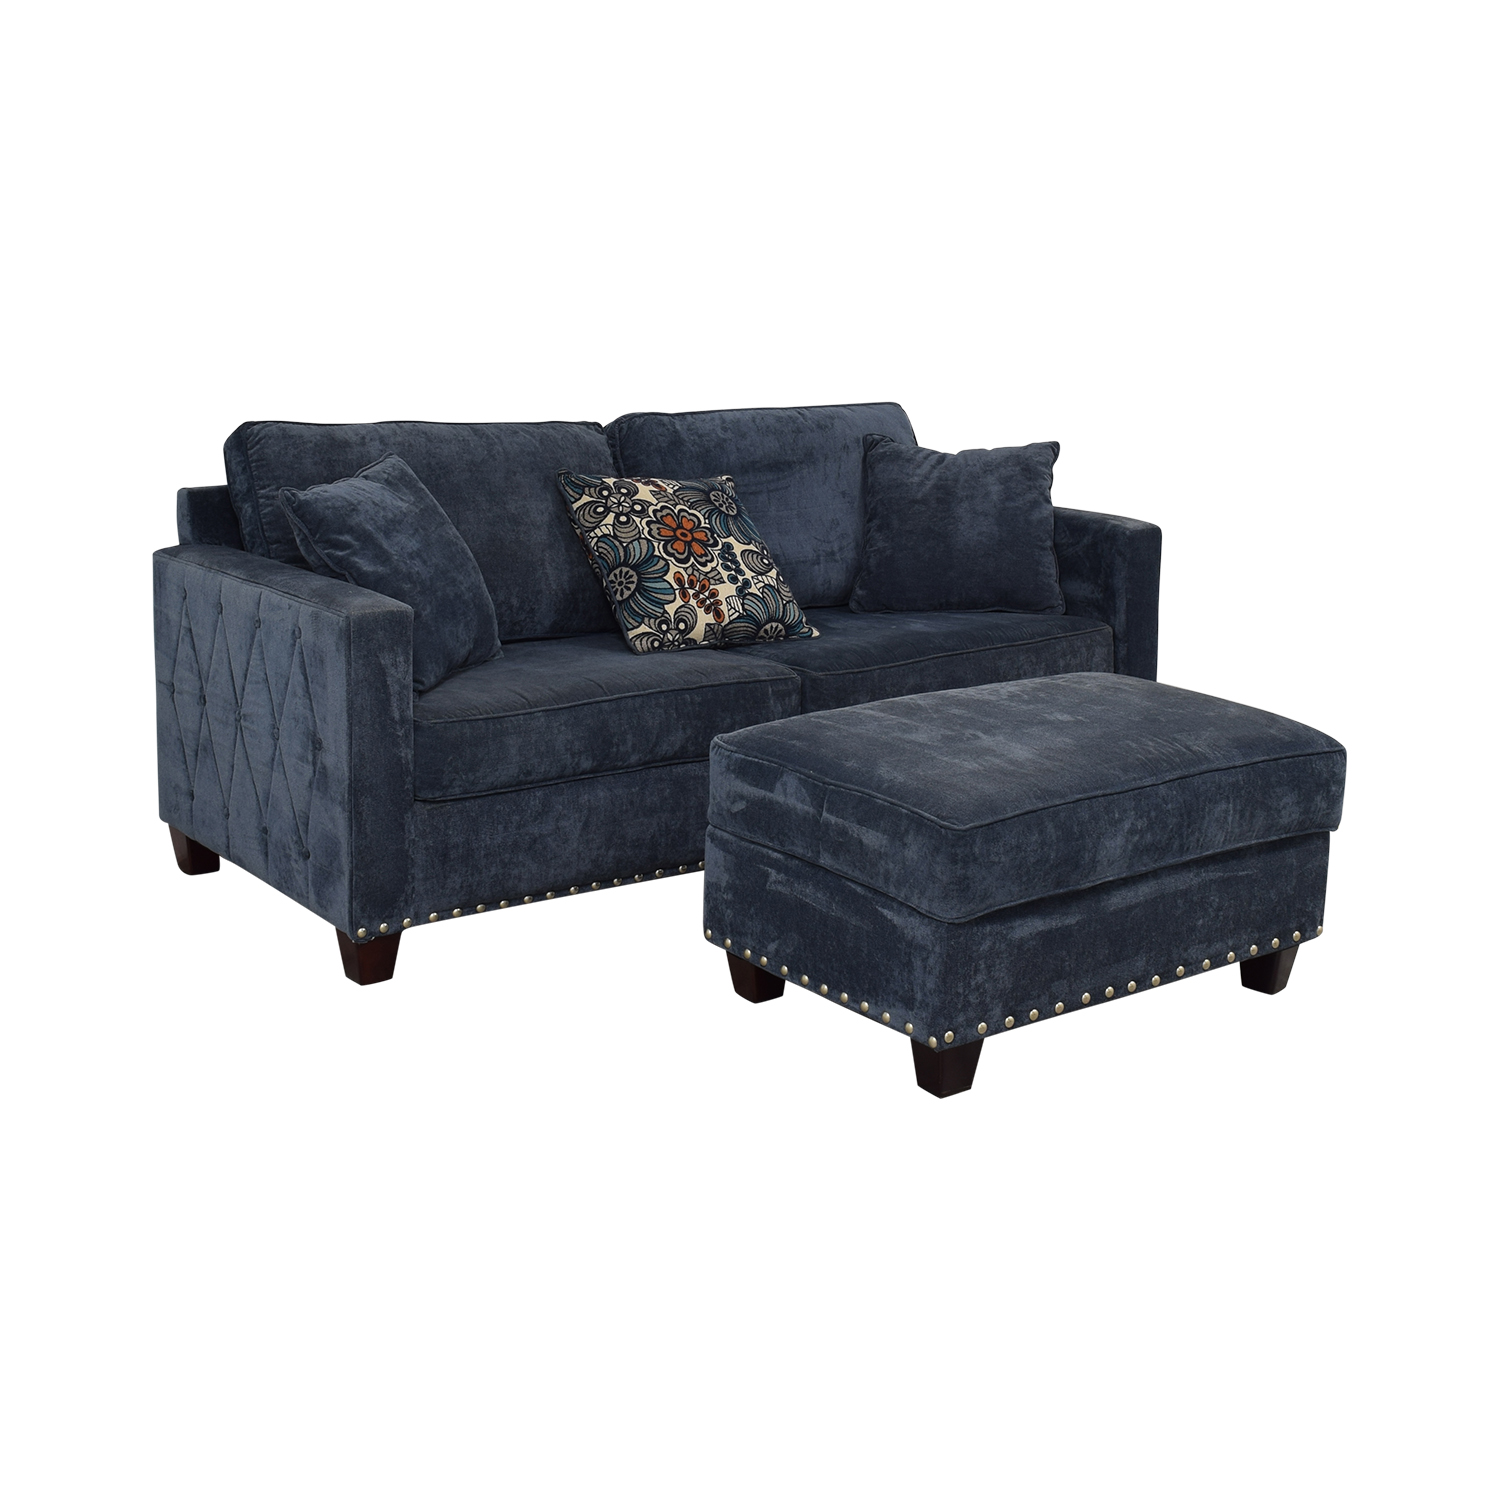 Bob's Discount Furniture Bob's Discount Furniture Melanie Blue Nailhead Sofa and Ottoman price